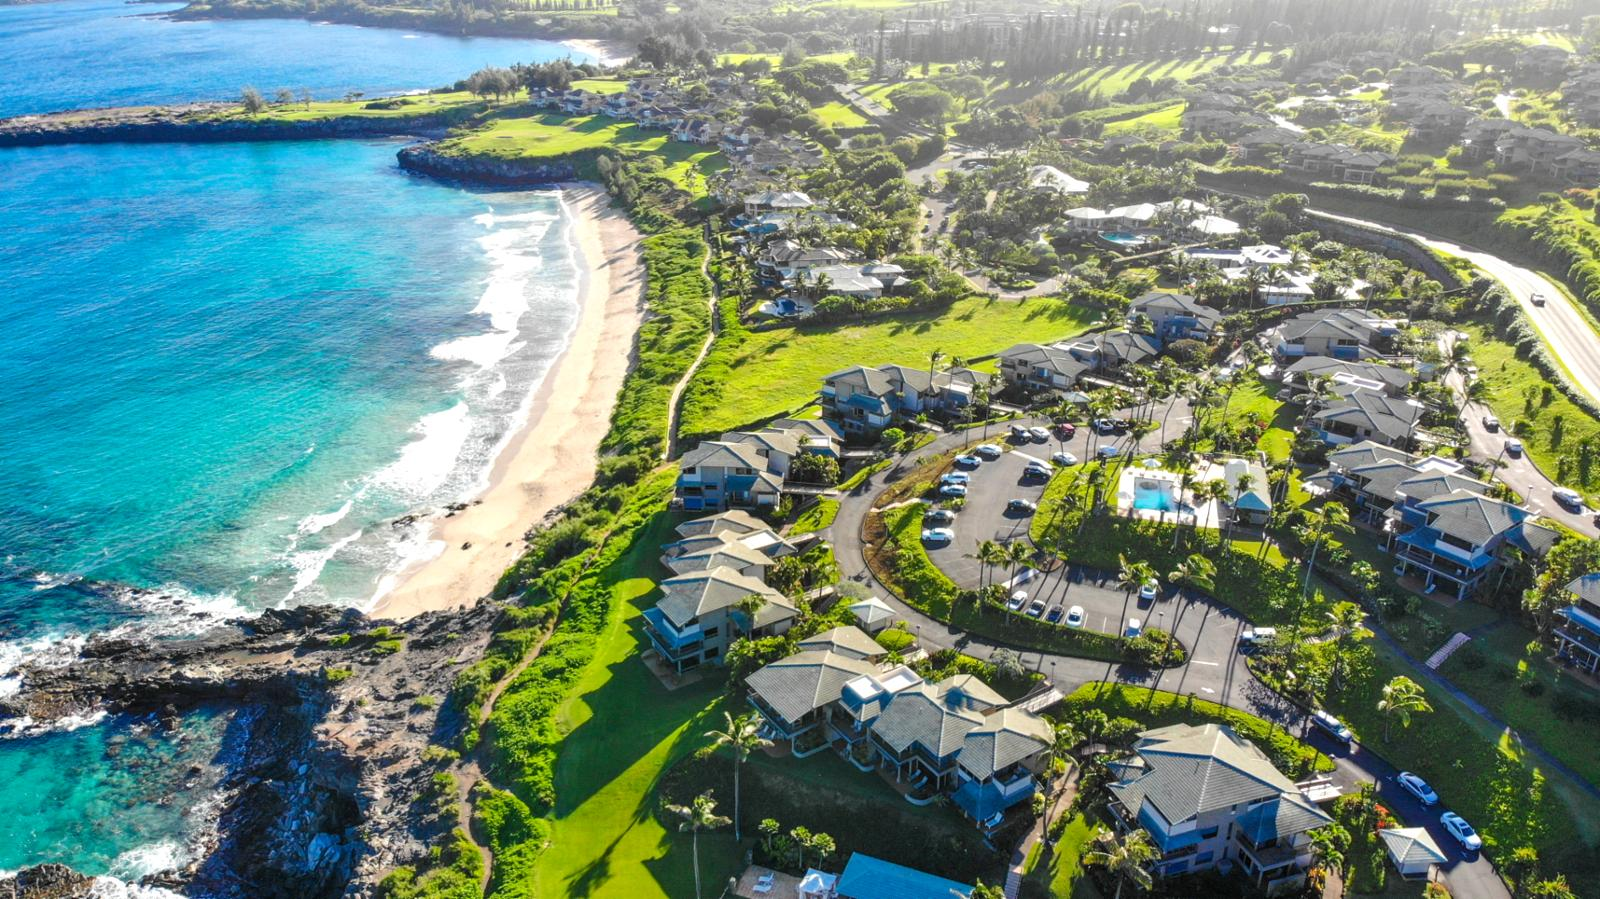 The Kapalua Bay Villas has it all, Come stay with us!